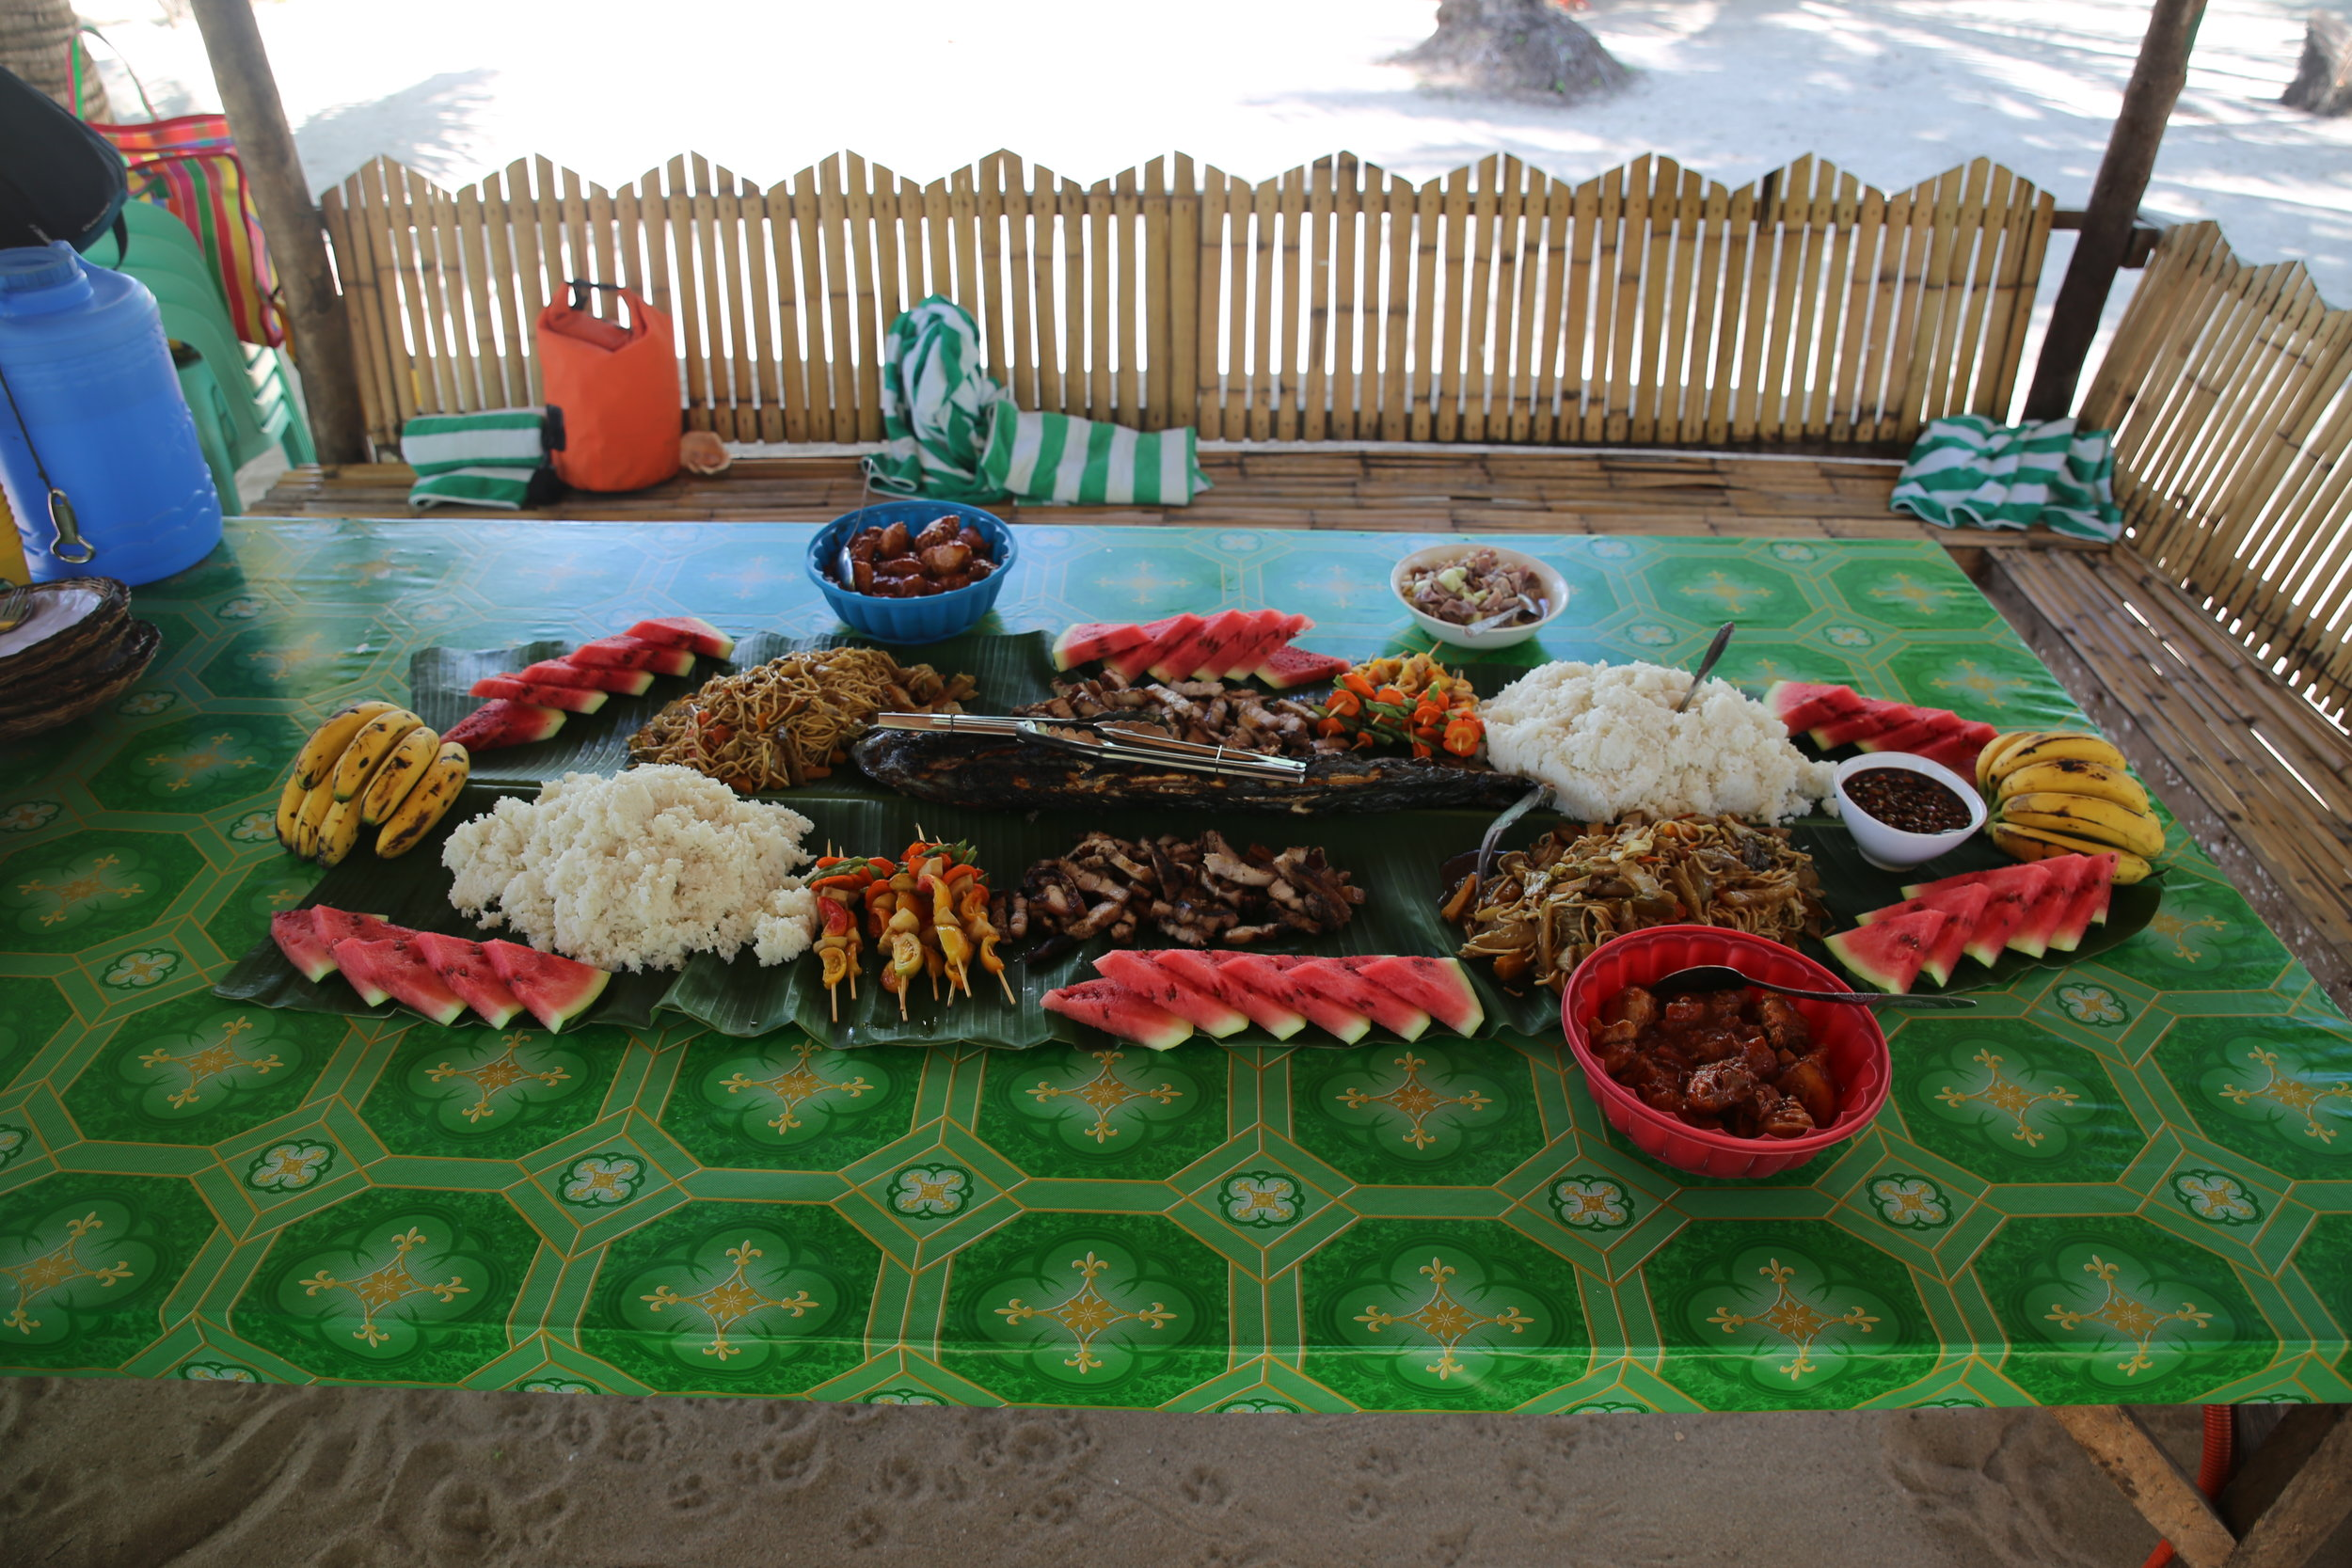 The great spread you get on any of the island hopping tours